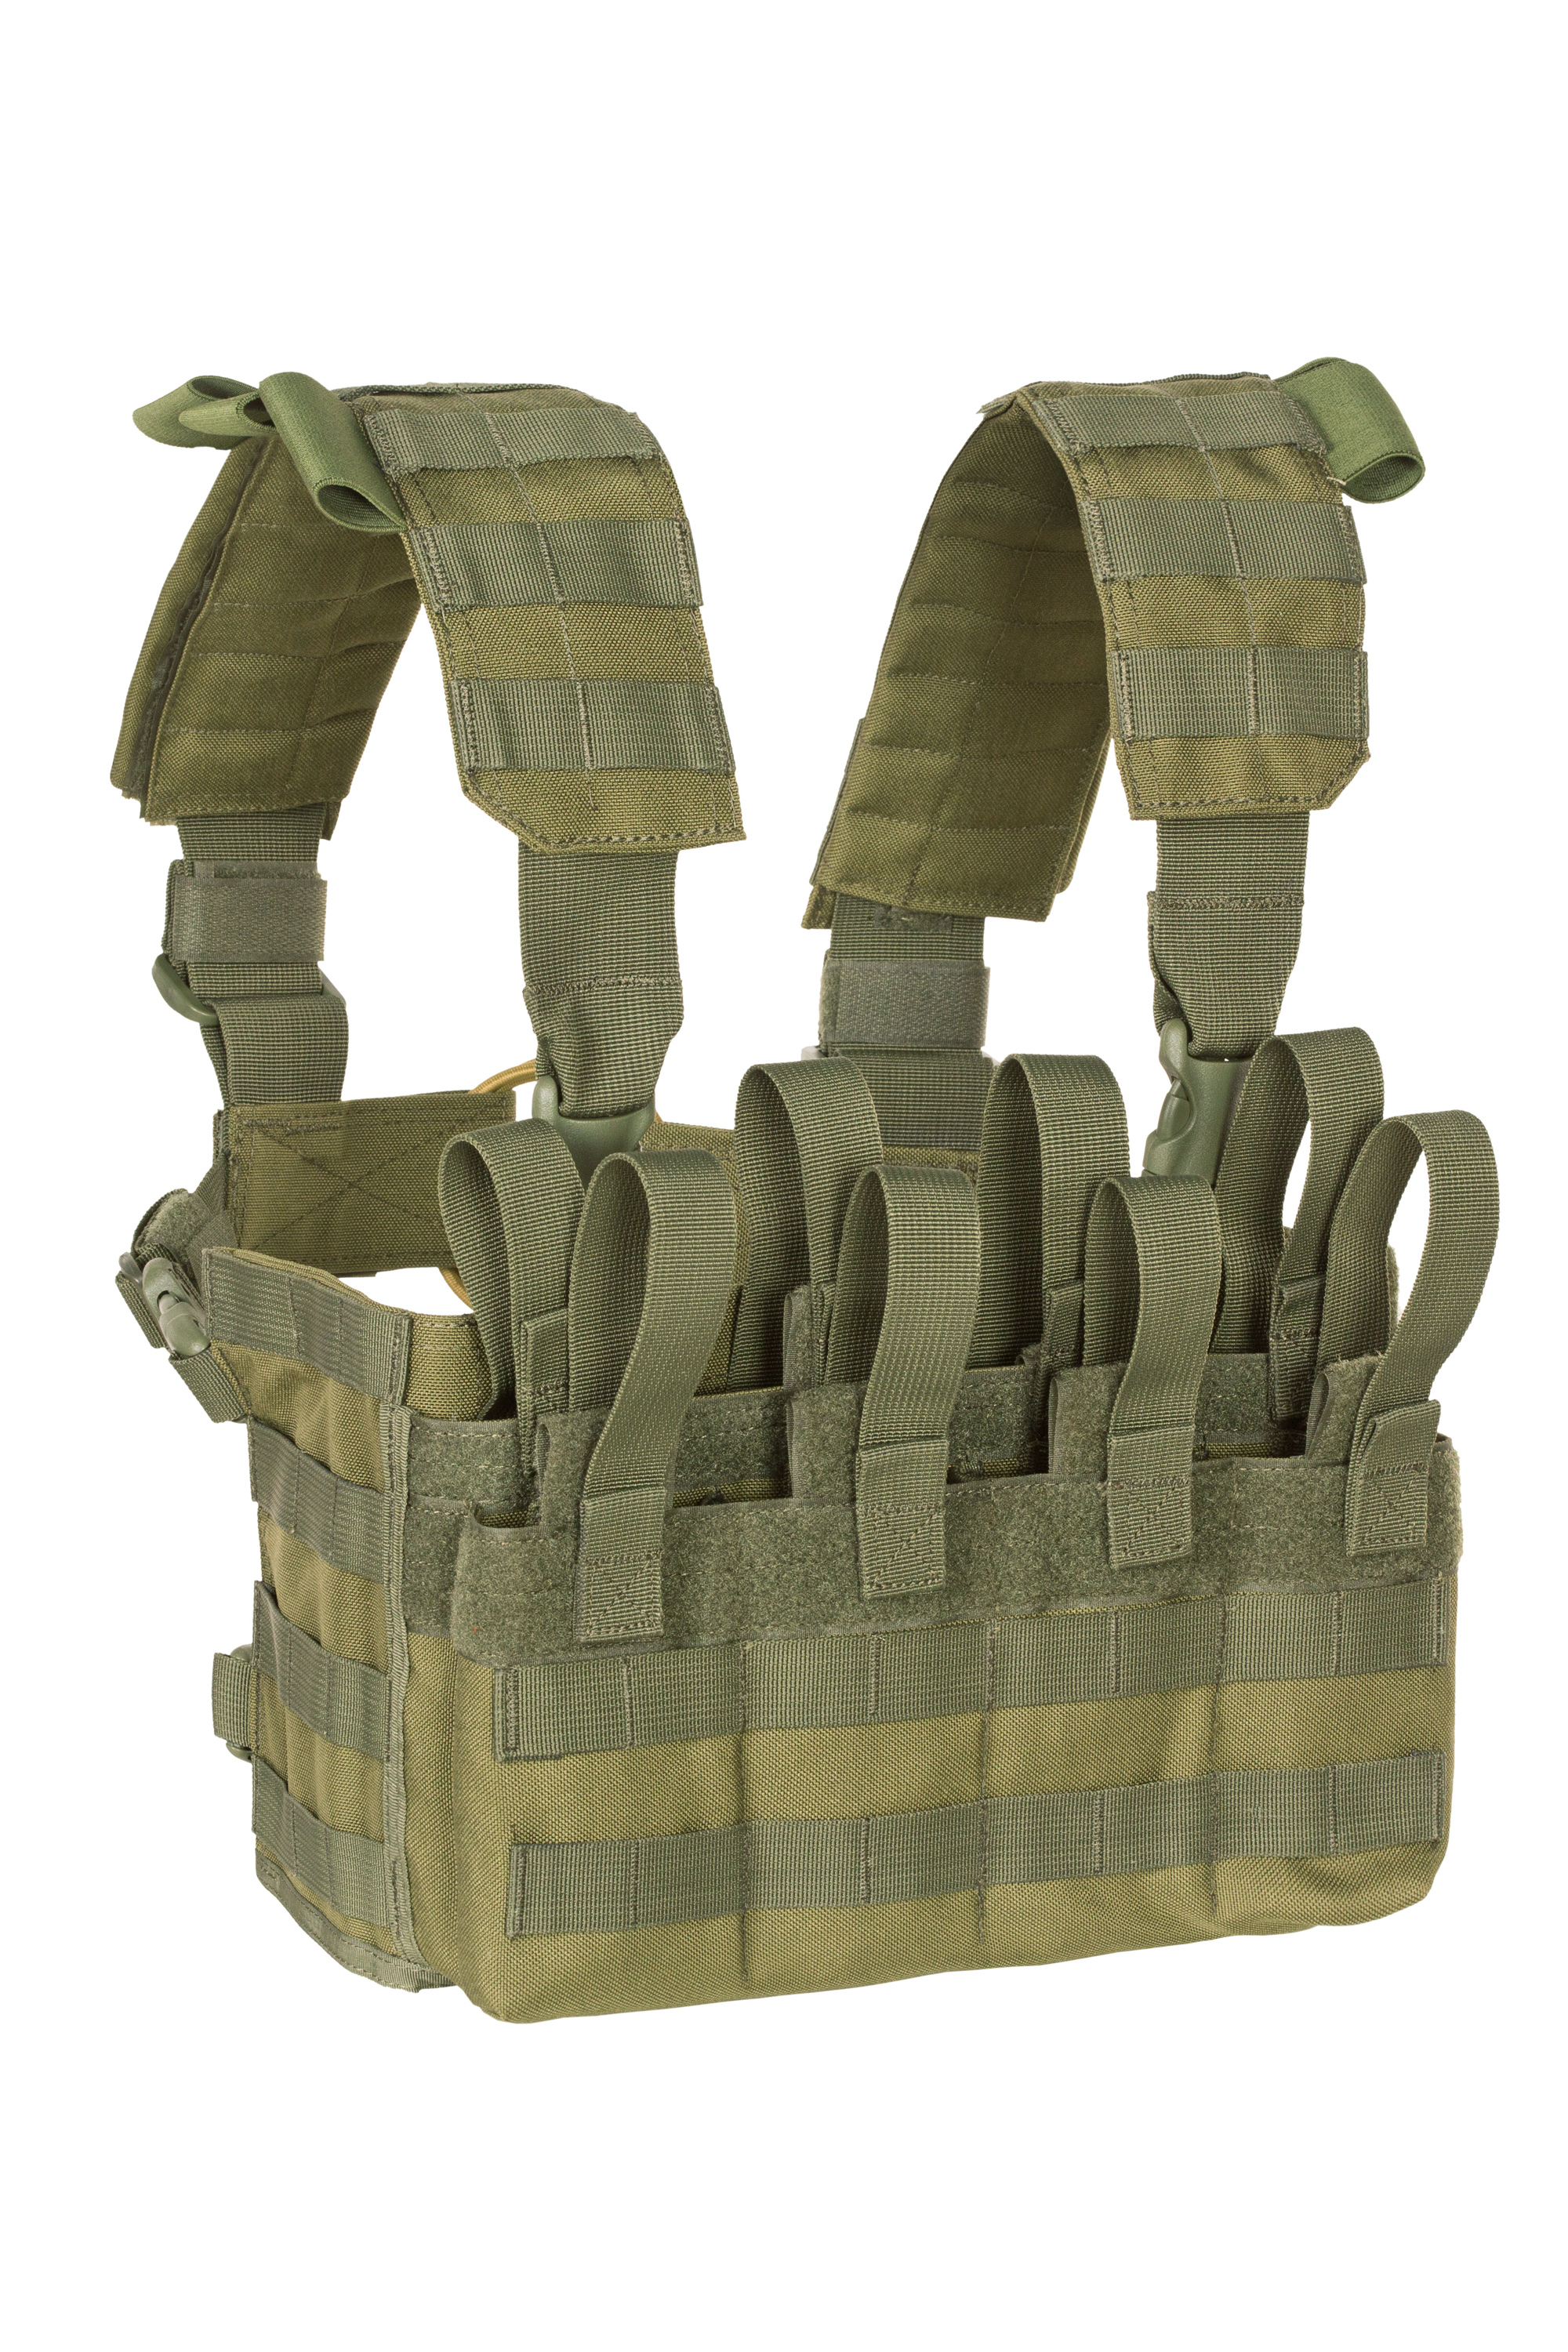 Frogman AK Chest Rig